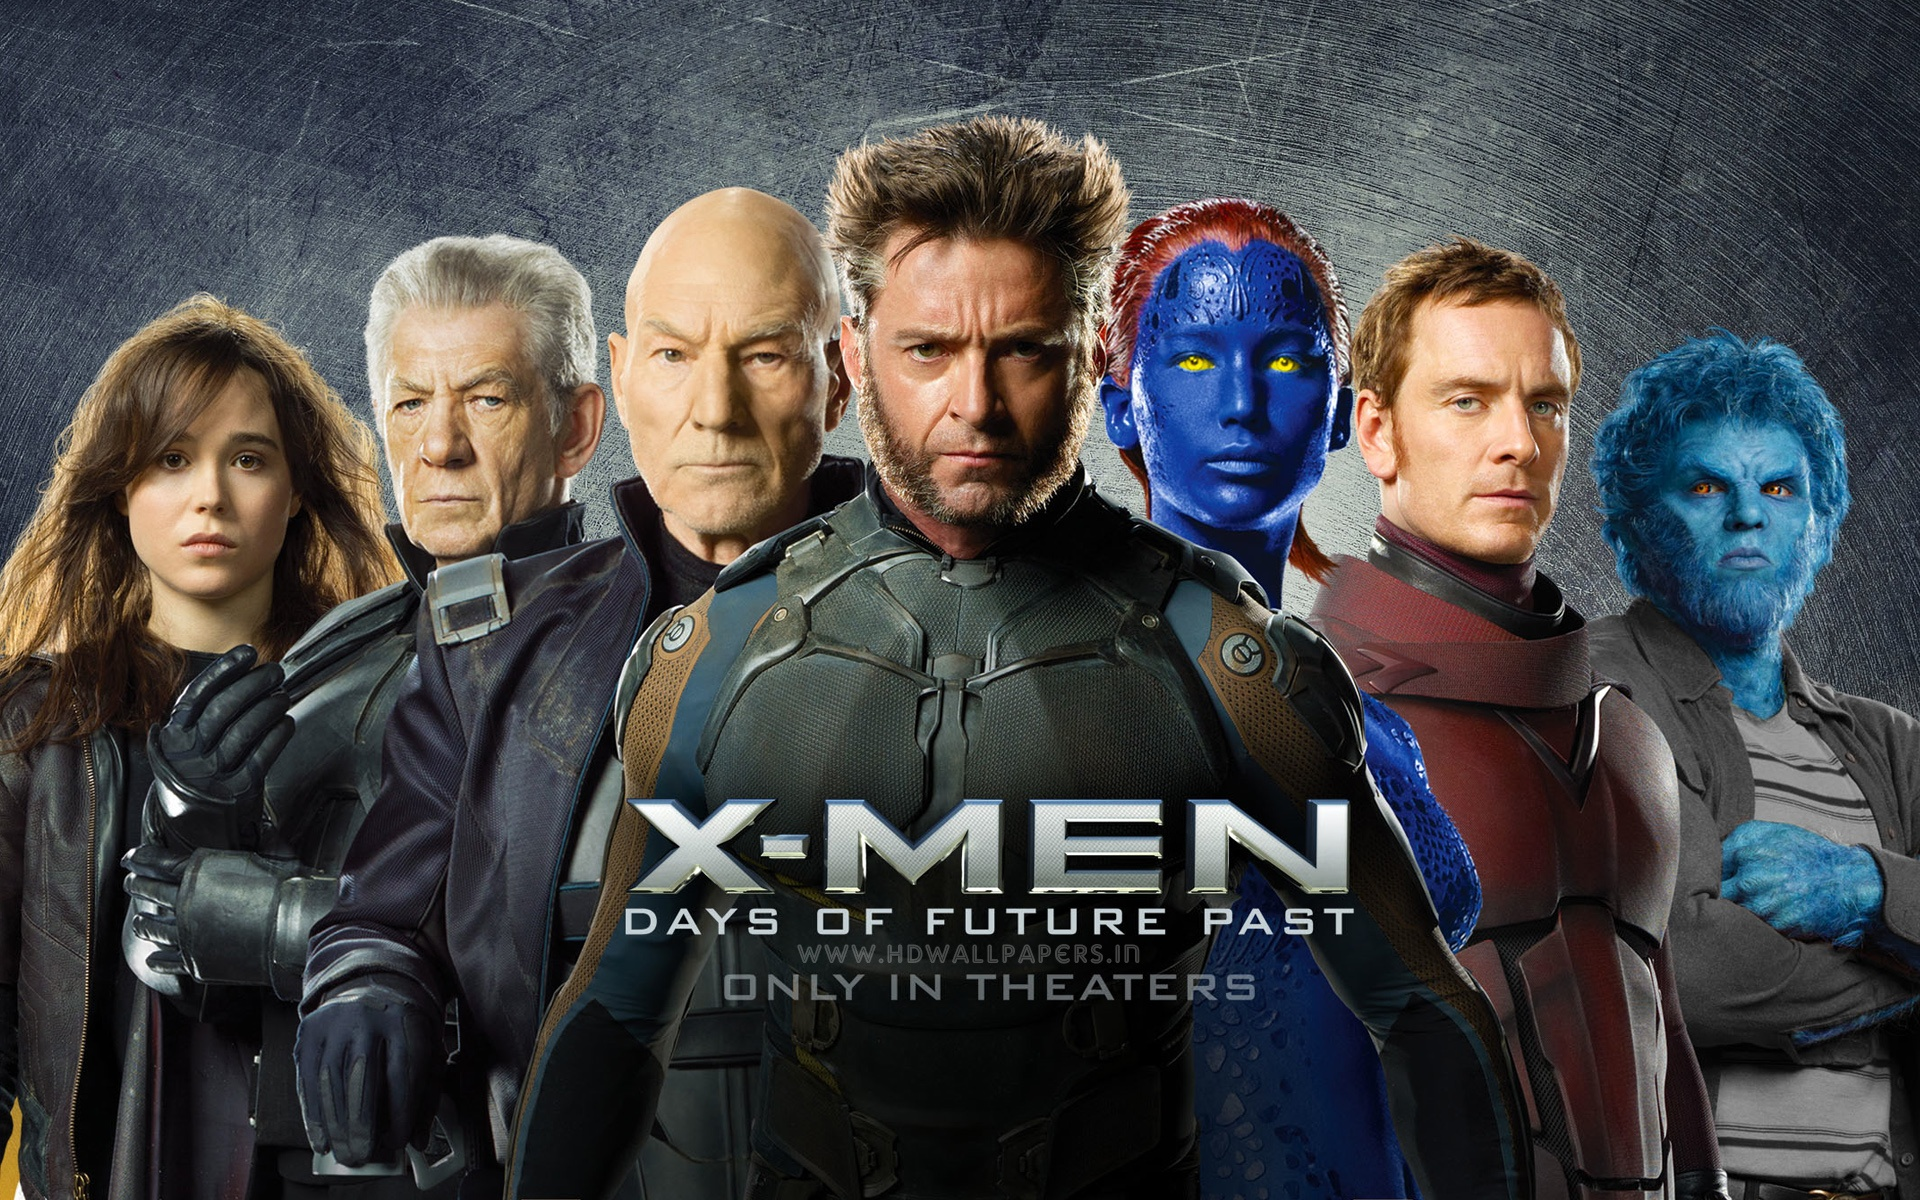 x men days of future past 2014 wallpapers in jpg format for free